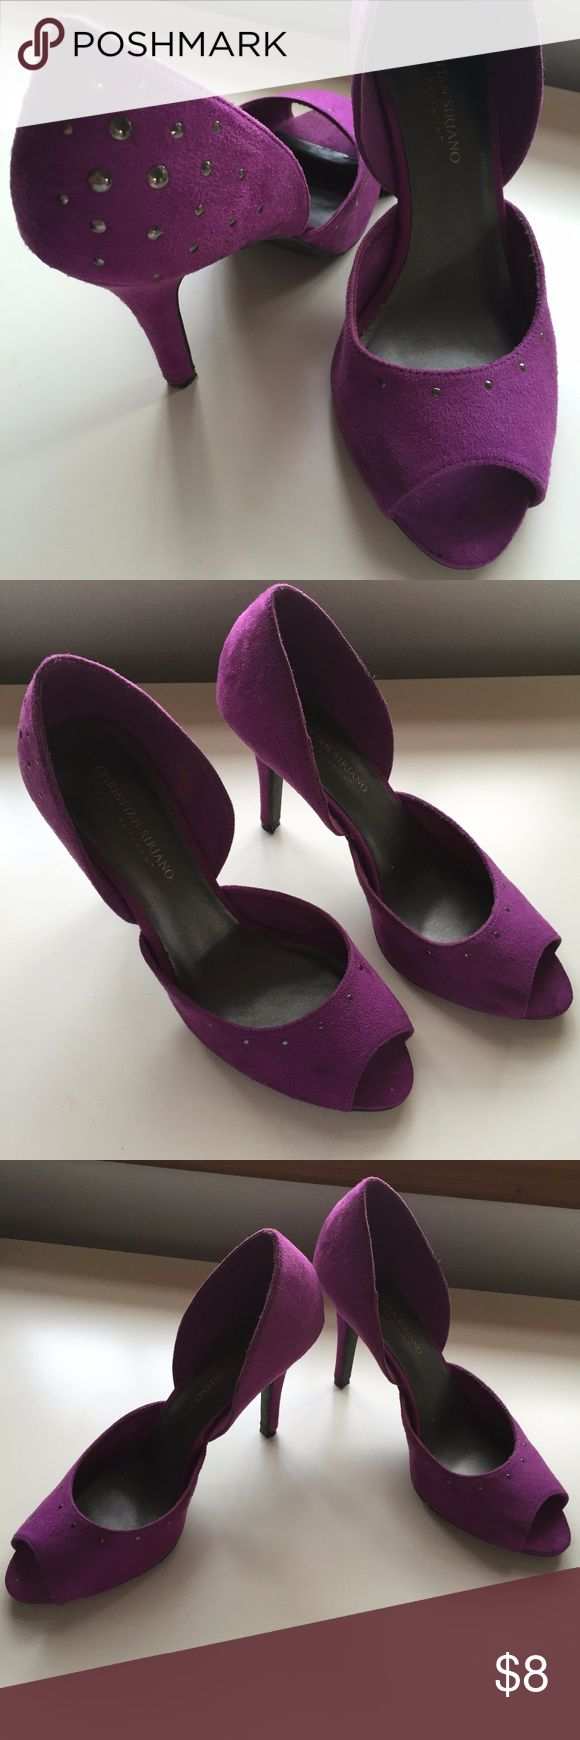 Christian Siriano Purple High Heels 9.5M Christian Siriano for Payless Purple High Heels 9.5M - worn once. Small stain on right shoe (as seen in pics), but could easily be touched up with suede shoe cleaner. Christian Siriano Shoes Heels